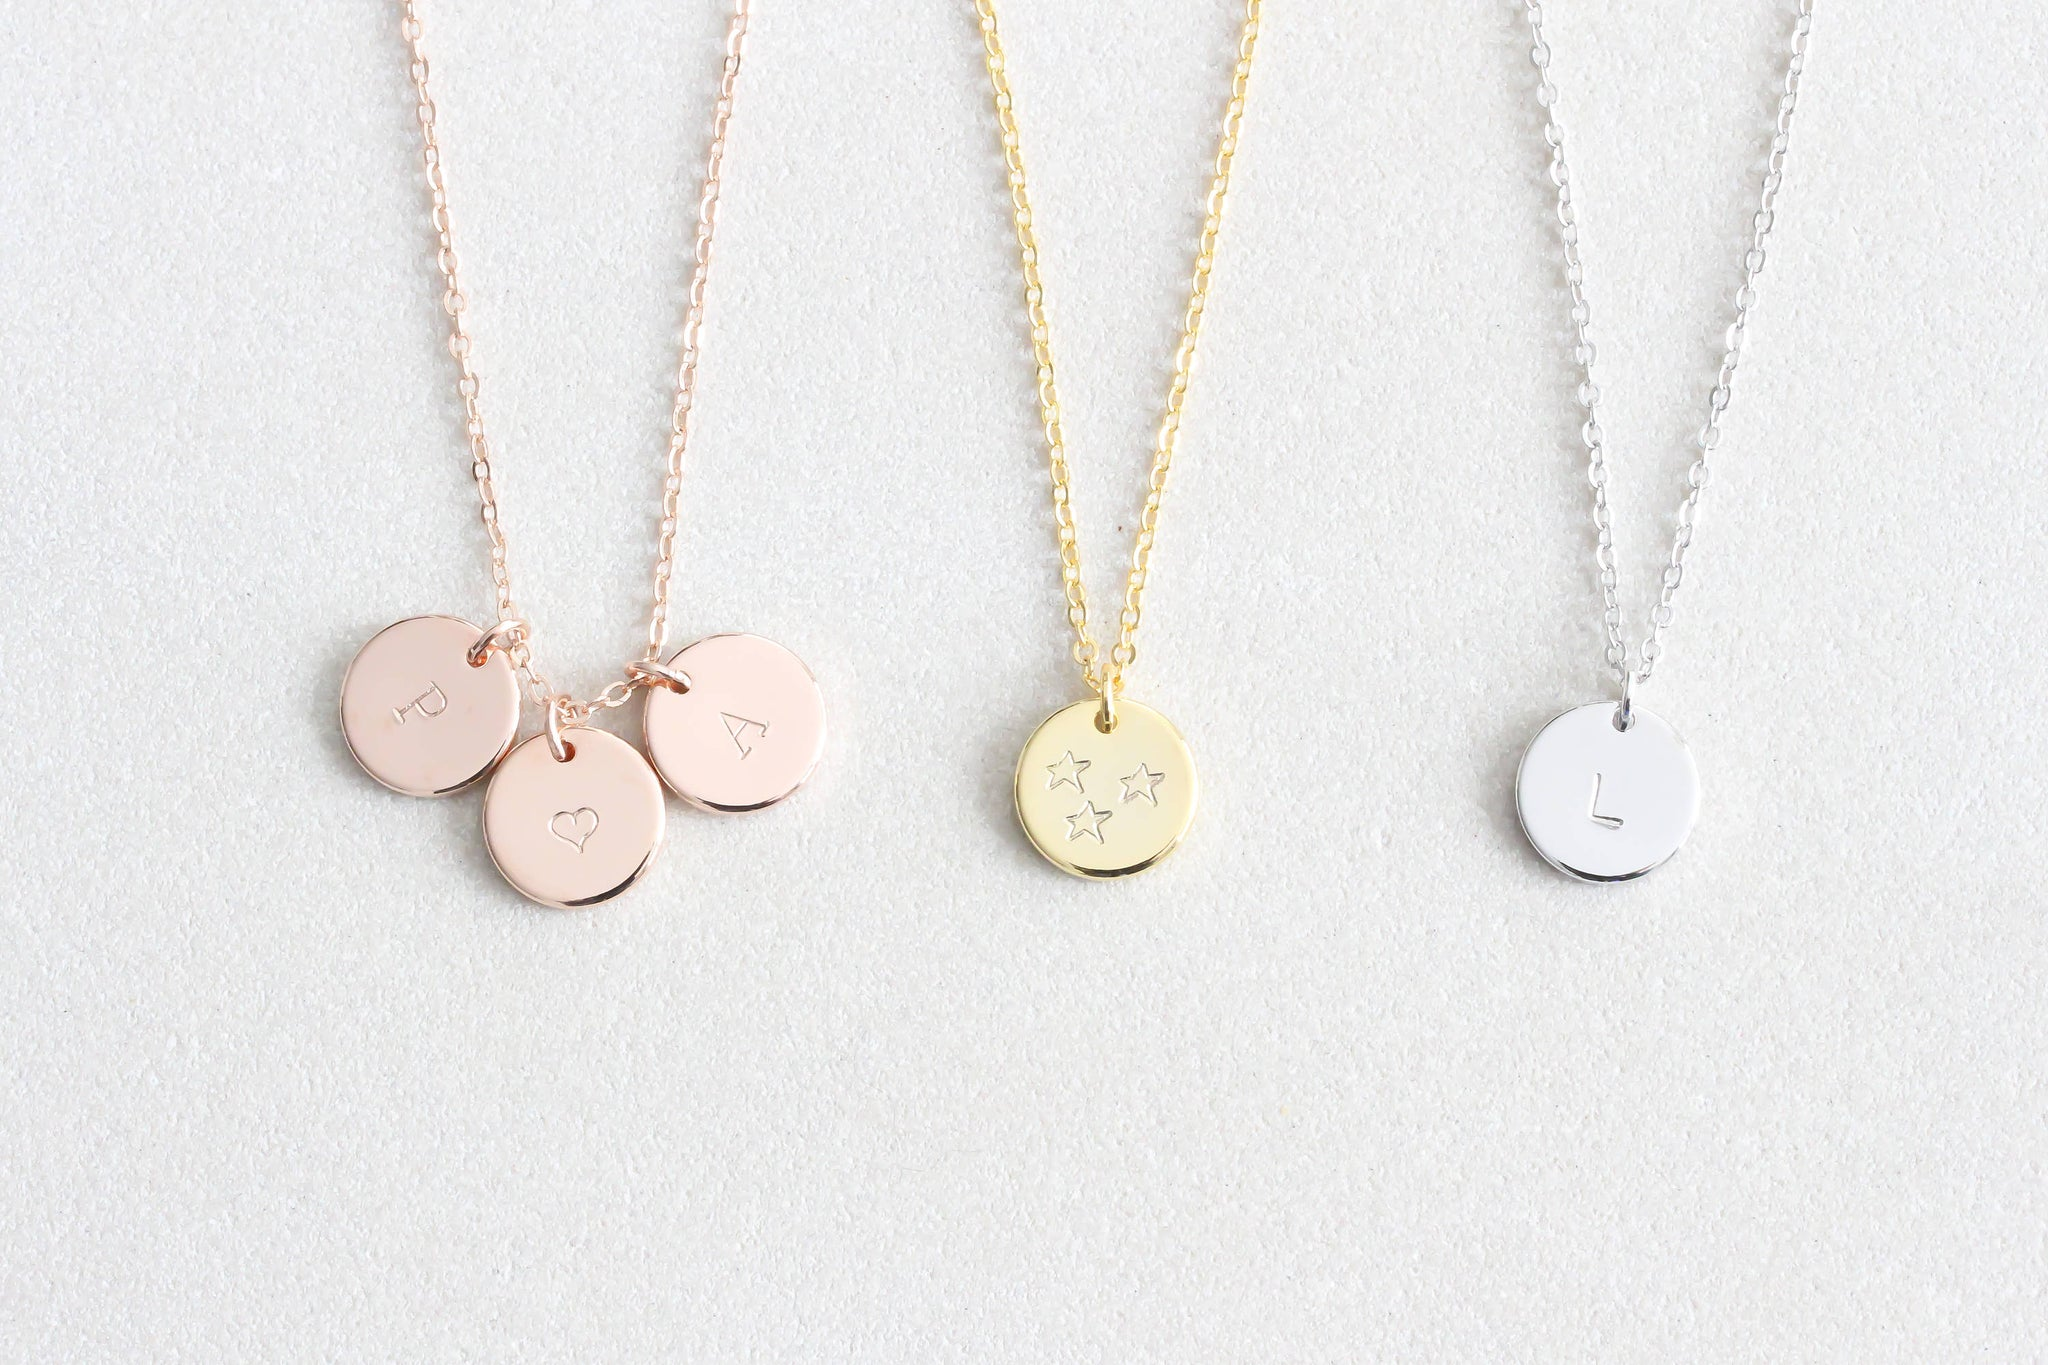 Tiny Initial Disc Necklace, Dainty Initial Gold, Hand Stamped Initial Letter Necklace Friendship Necklace Stocking Stuffer Bridesmaid gift - product_type] - Beautiz